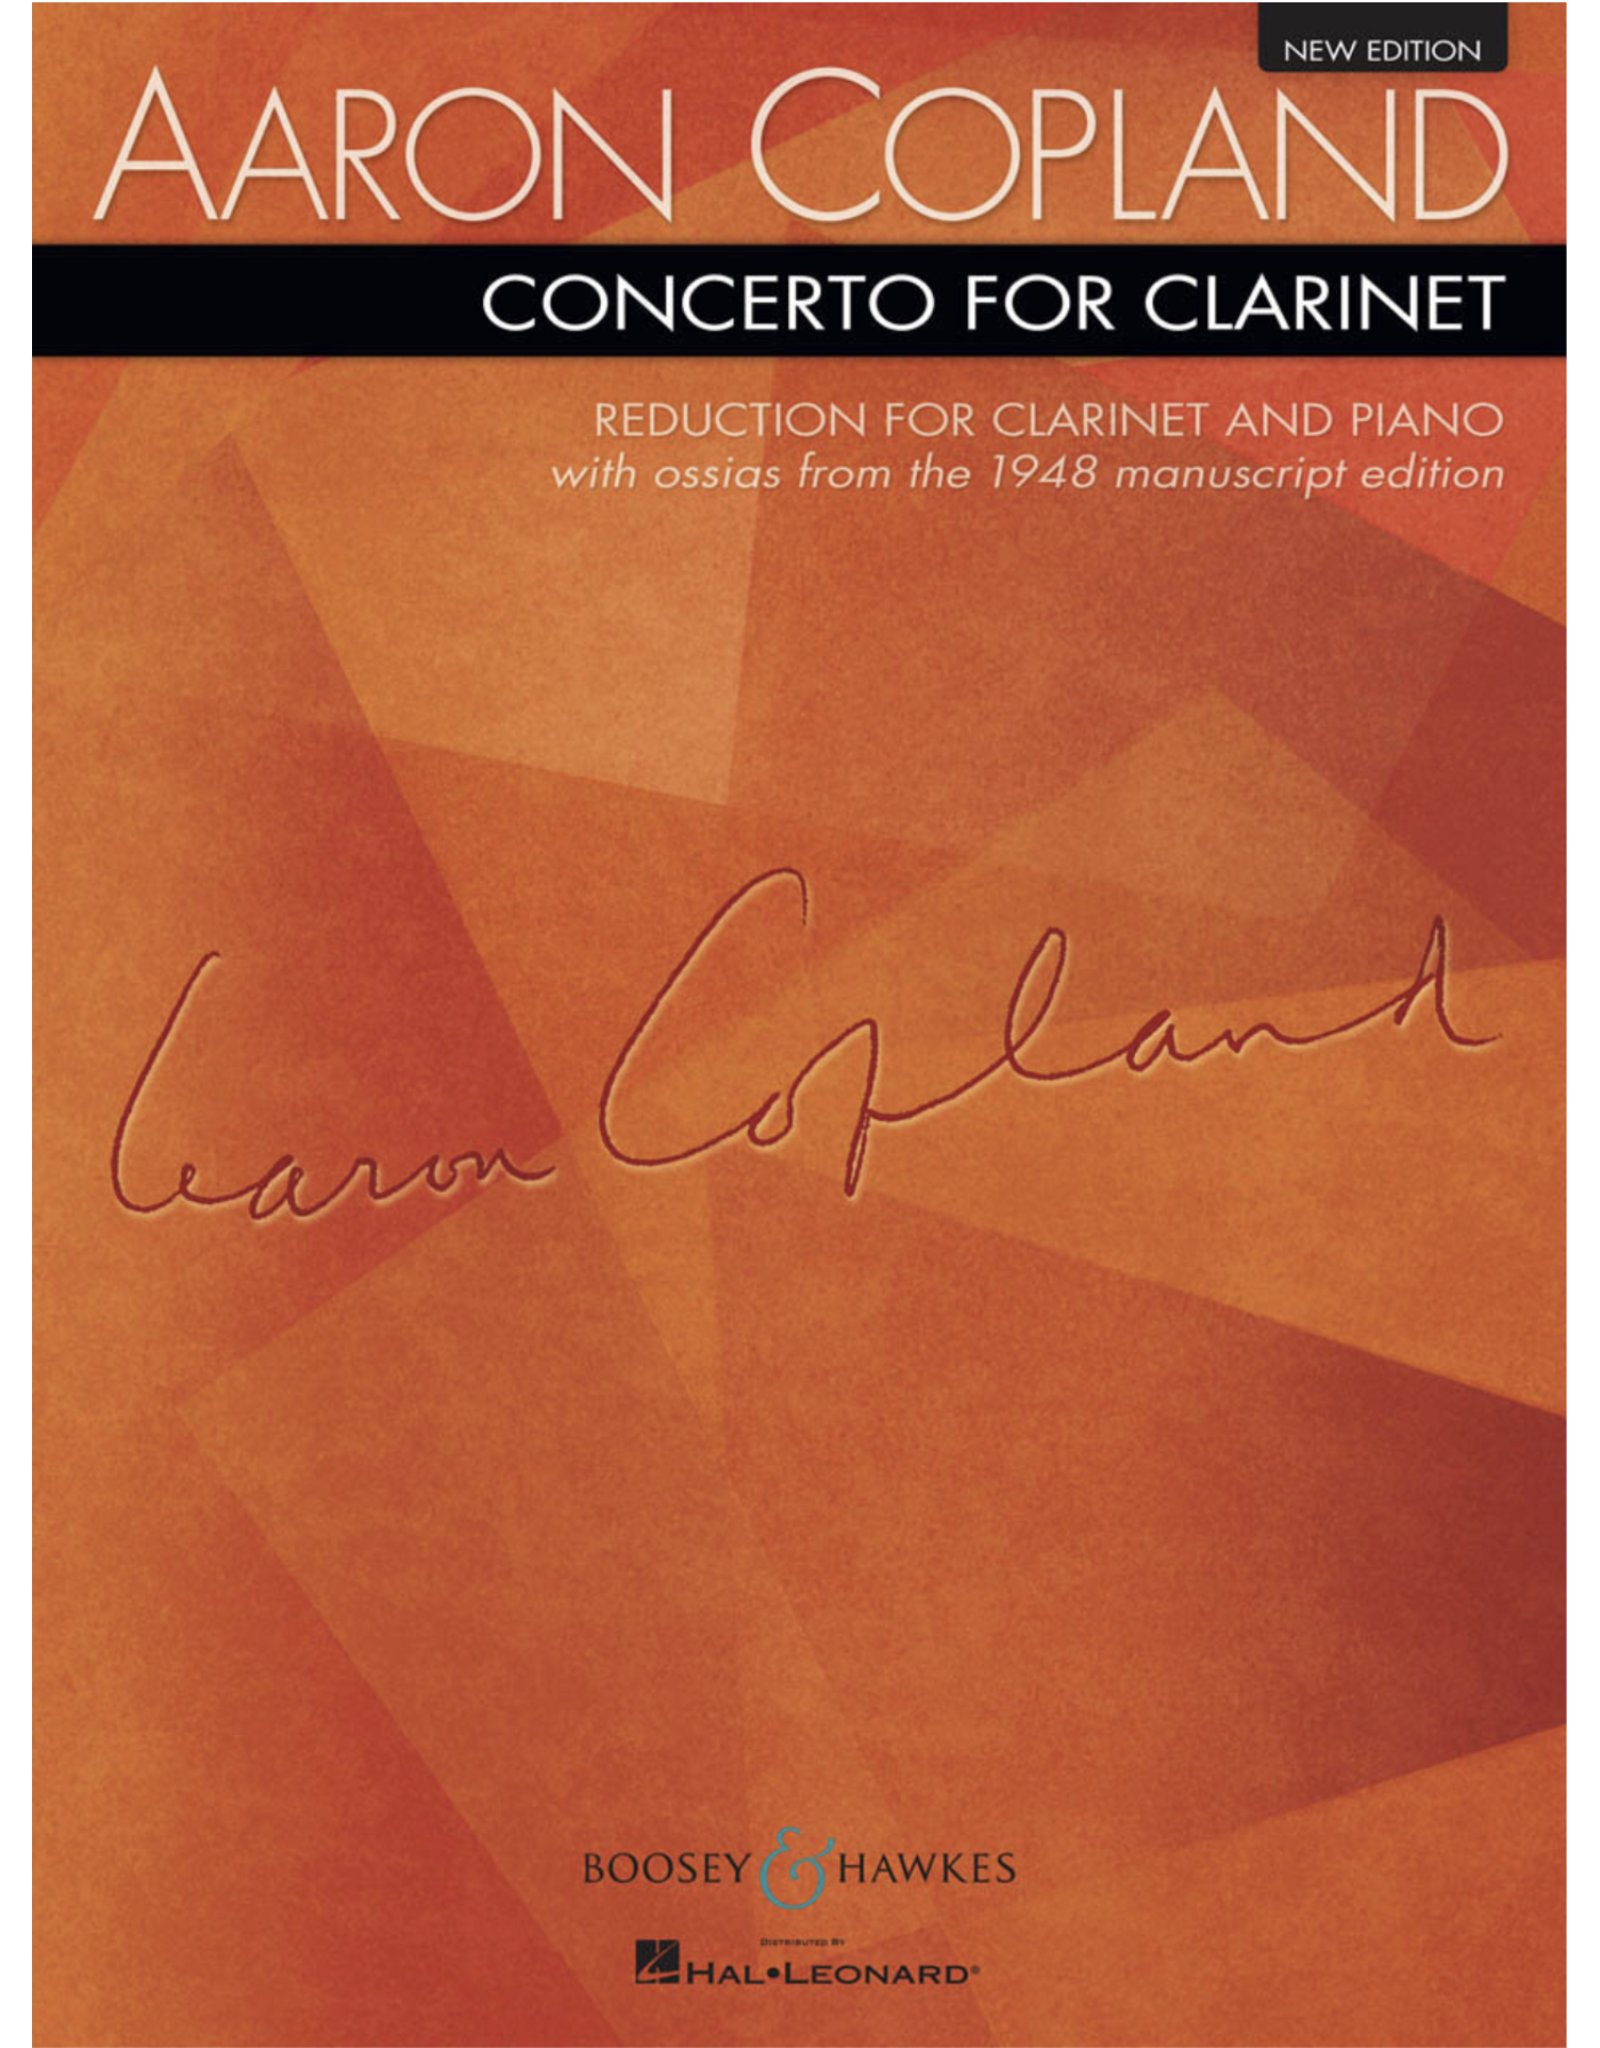 Boosey & Hawkes Copland Concerto for Clarinet and Piano B&H